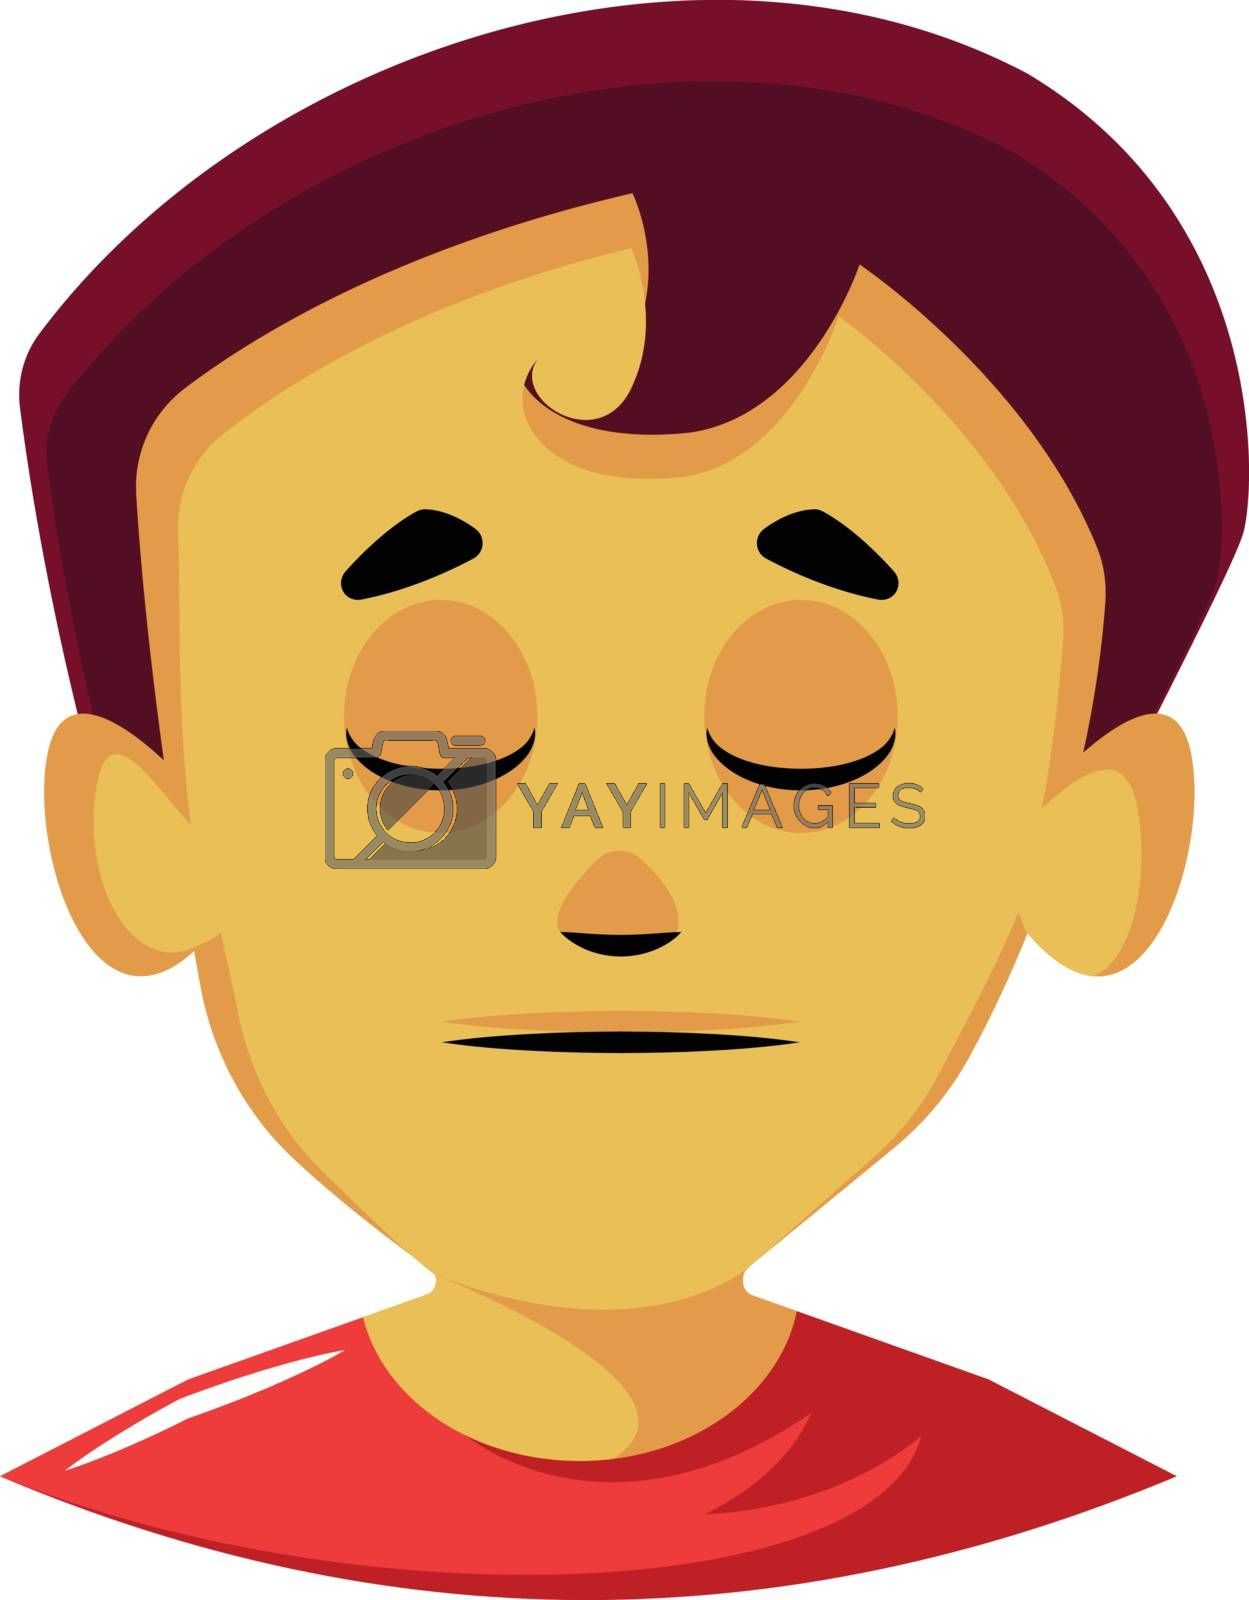 Royalty free image of Calm lookong man with red hair illustration vector on white back by Morphart